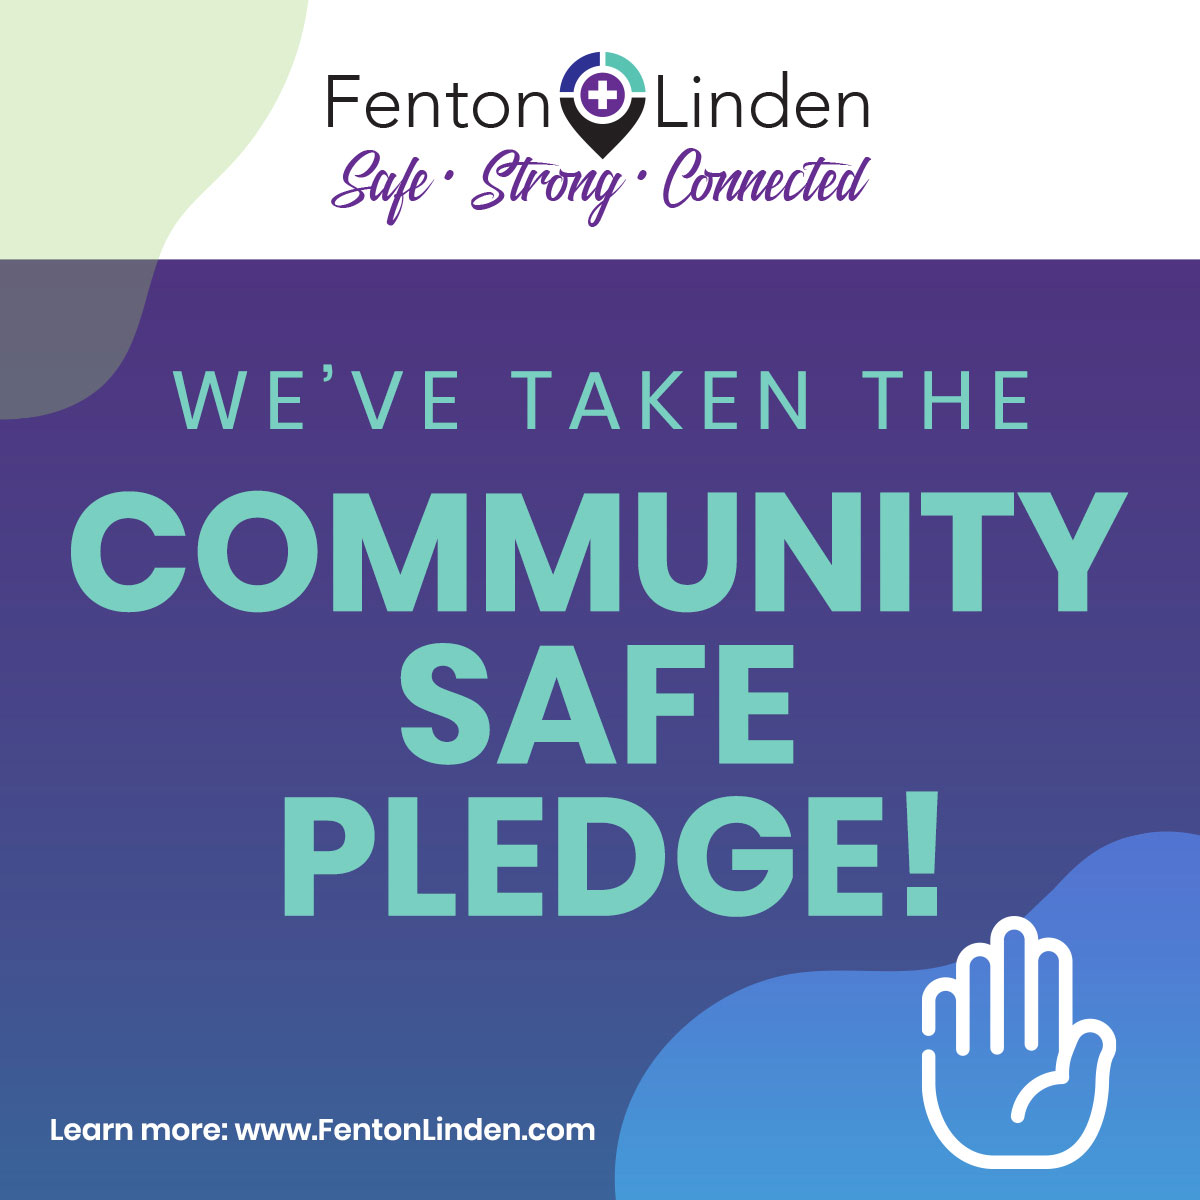 Fenton Linden Safe - Strong - Connected